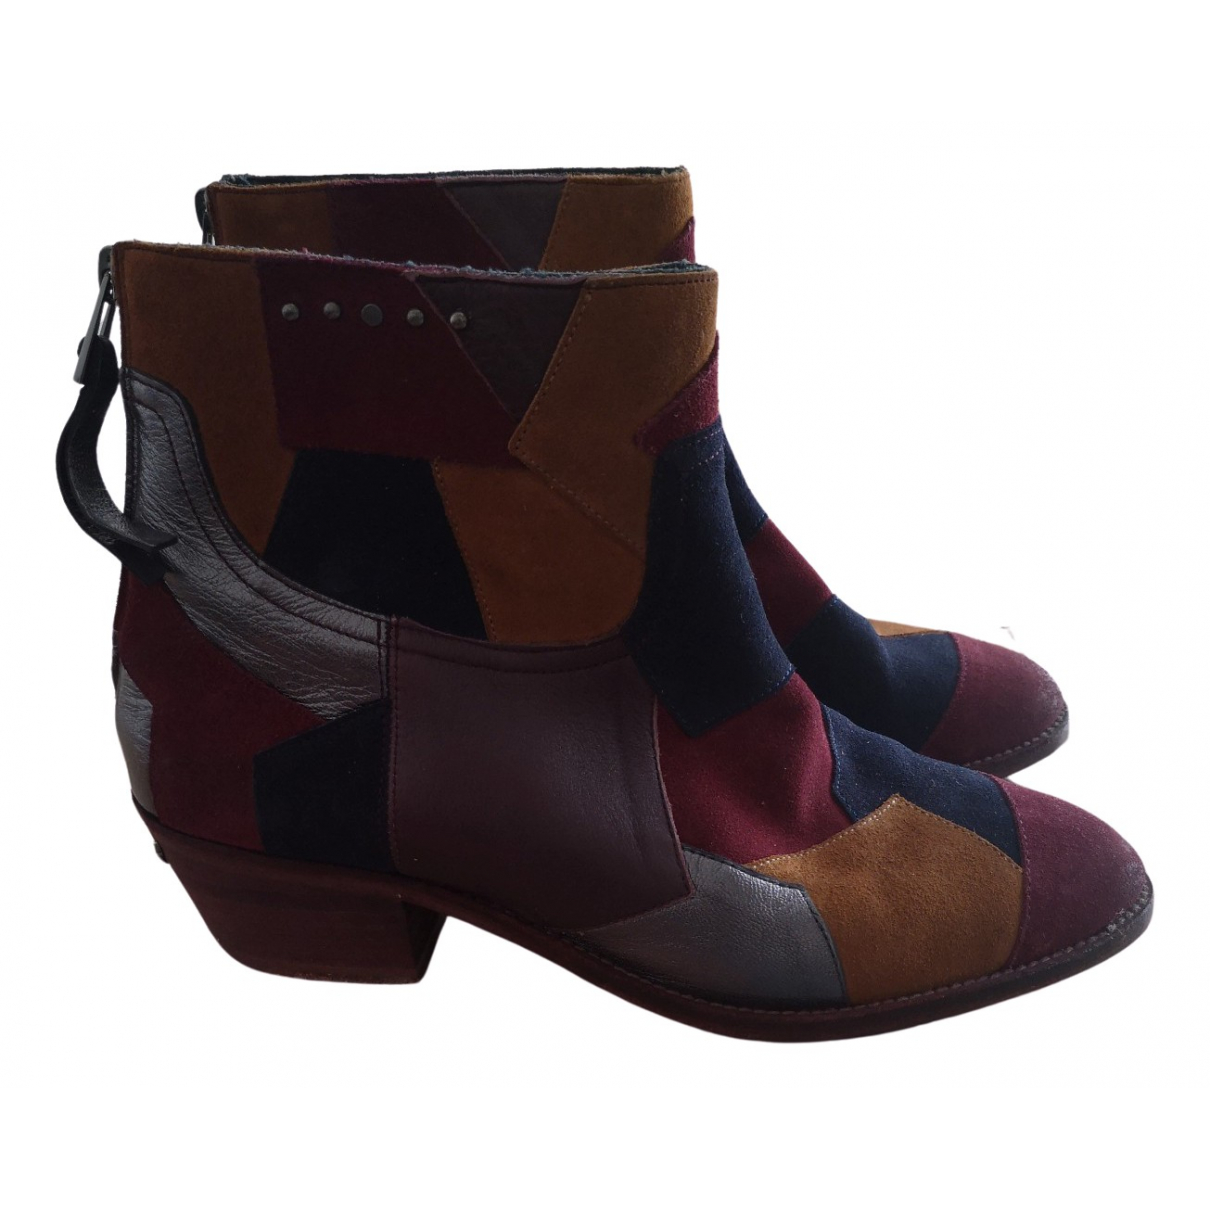 Zadig & Voltaire Teddy Multicolour Leather Ankle boots for Women 40 EU